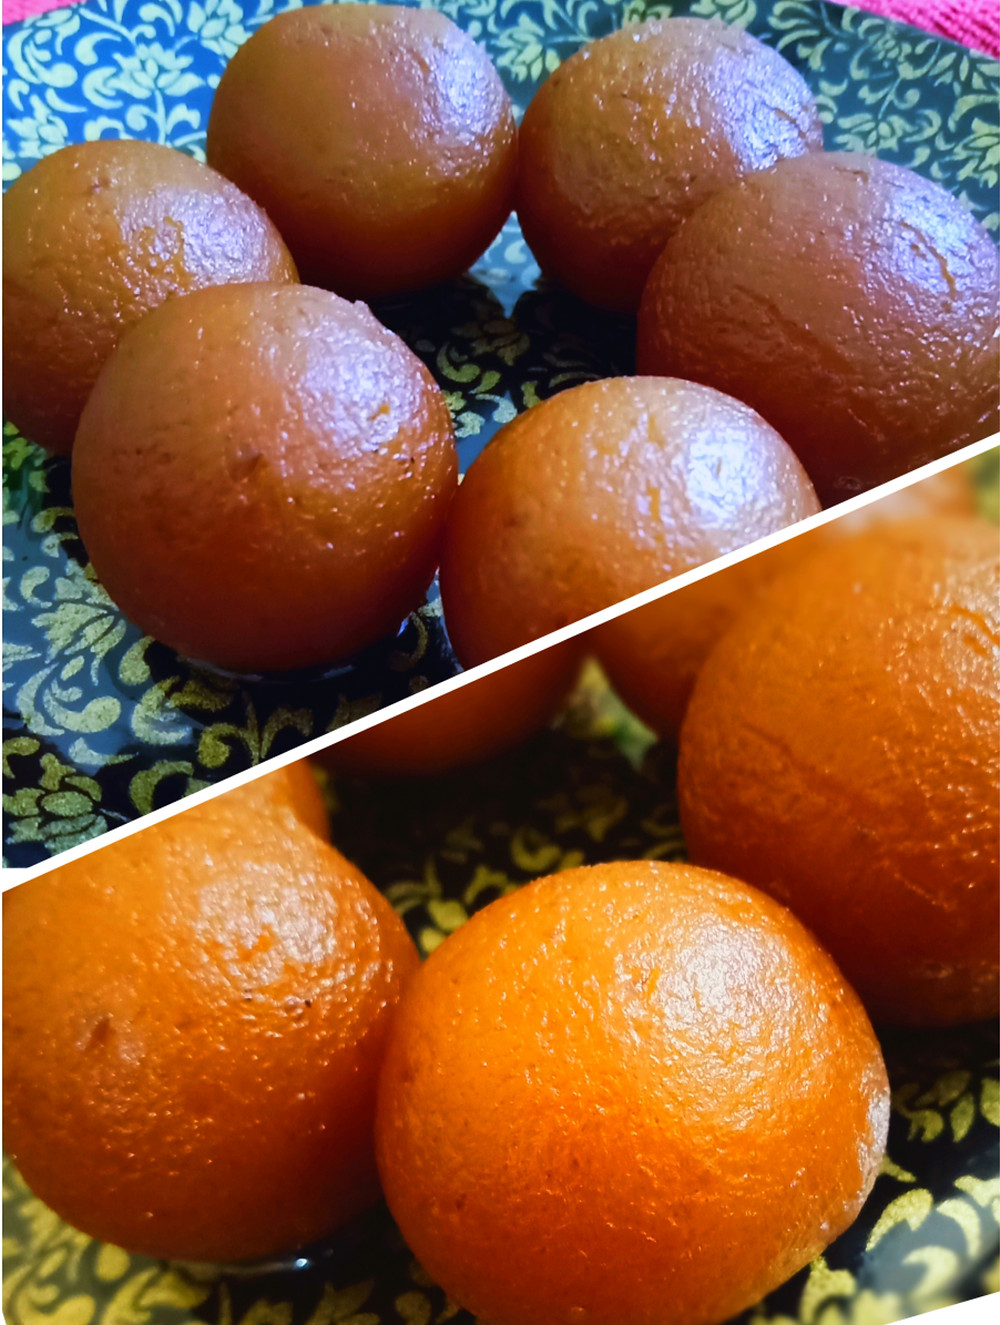 Ledikeni is a light fried reddish-brown sweet ball made of Chhena and flour and soaked in sugar syrup.